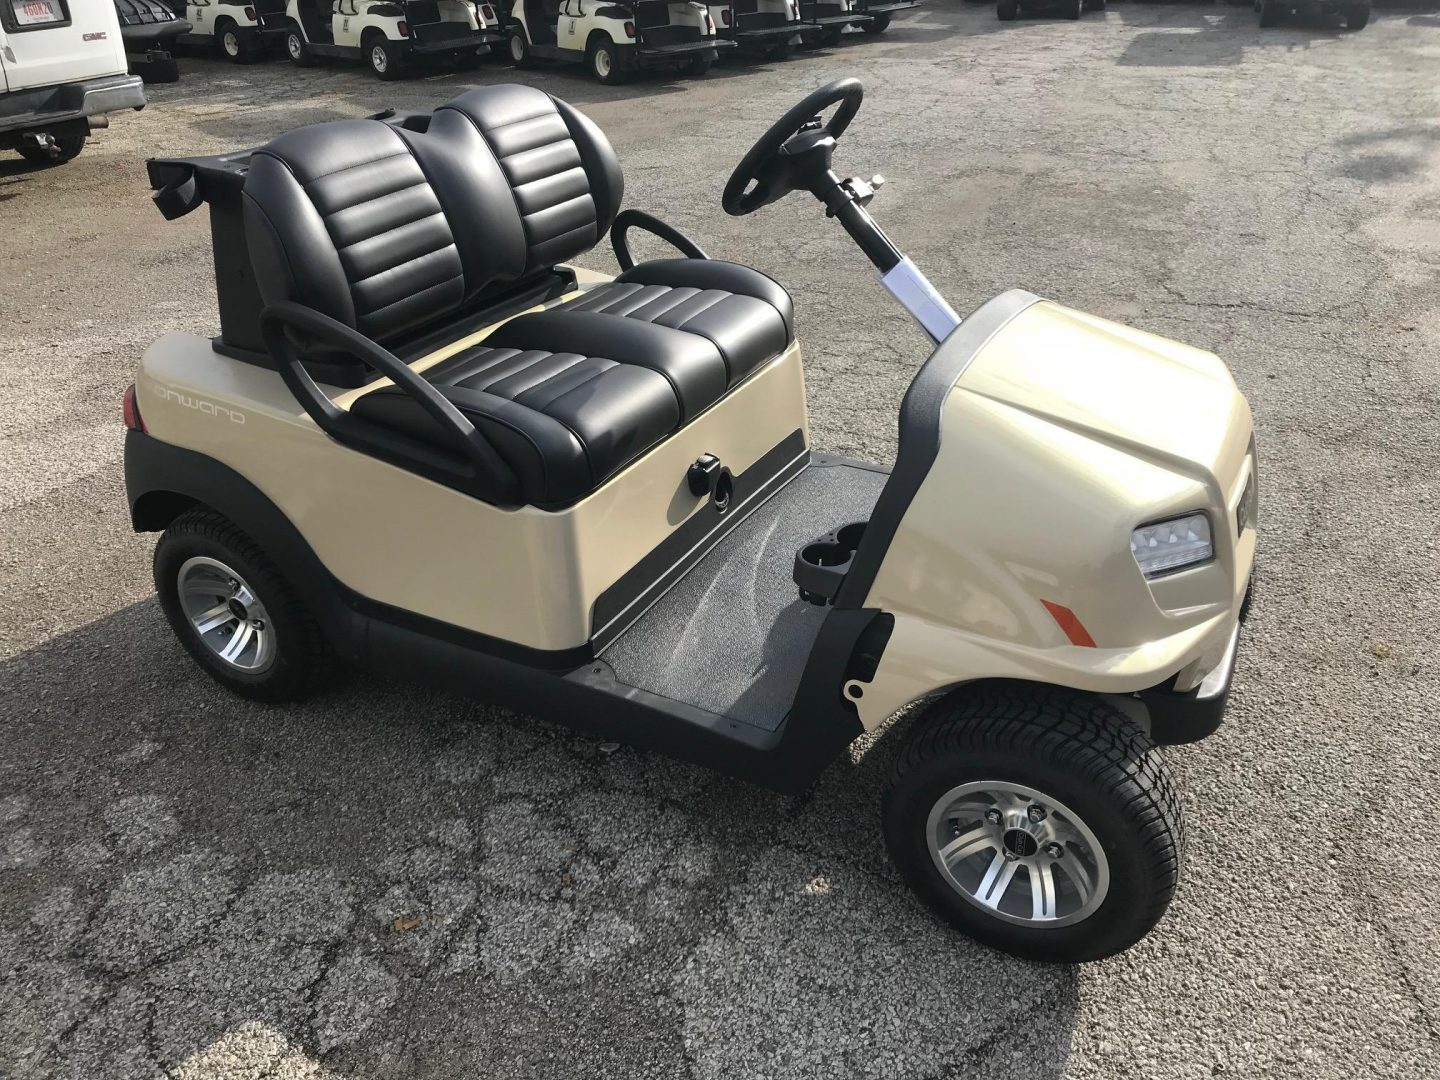 2018 Club Car Onward - Golf - Wiers Golf Carts & Utility Vehicles Type Golf Cart Utility Carts on used gem golf cart, golf cart bucket, golf cart food cart, golf cart bridge, golf cart trailer cart, golf cart dolly, golf cart dealers local, golf cart go cart, golf cart concession cart, golf cart motor home, golf cart car, trailer for golf cart, golf cart door, golf cart dozer, golf cart crane, golf cart in lake, golf cart maintenance, dog golf cart, walmart golf cart, golf cart tiller,